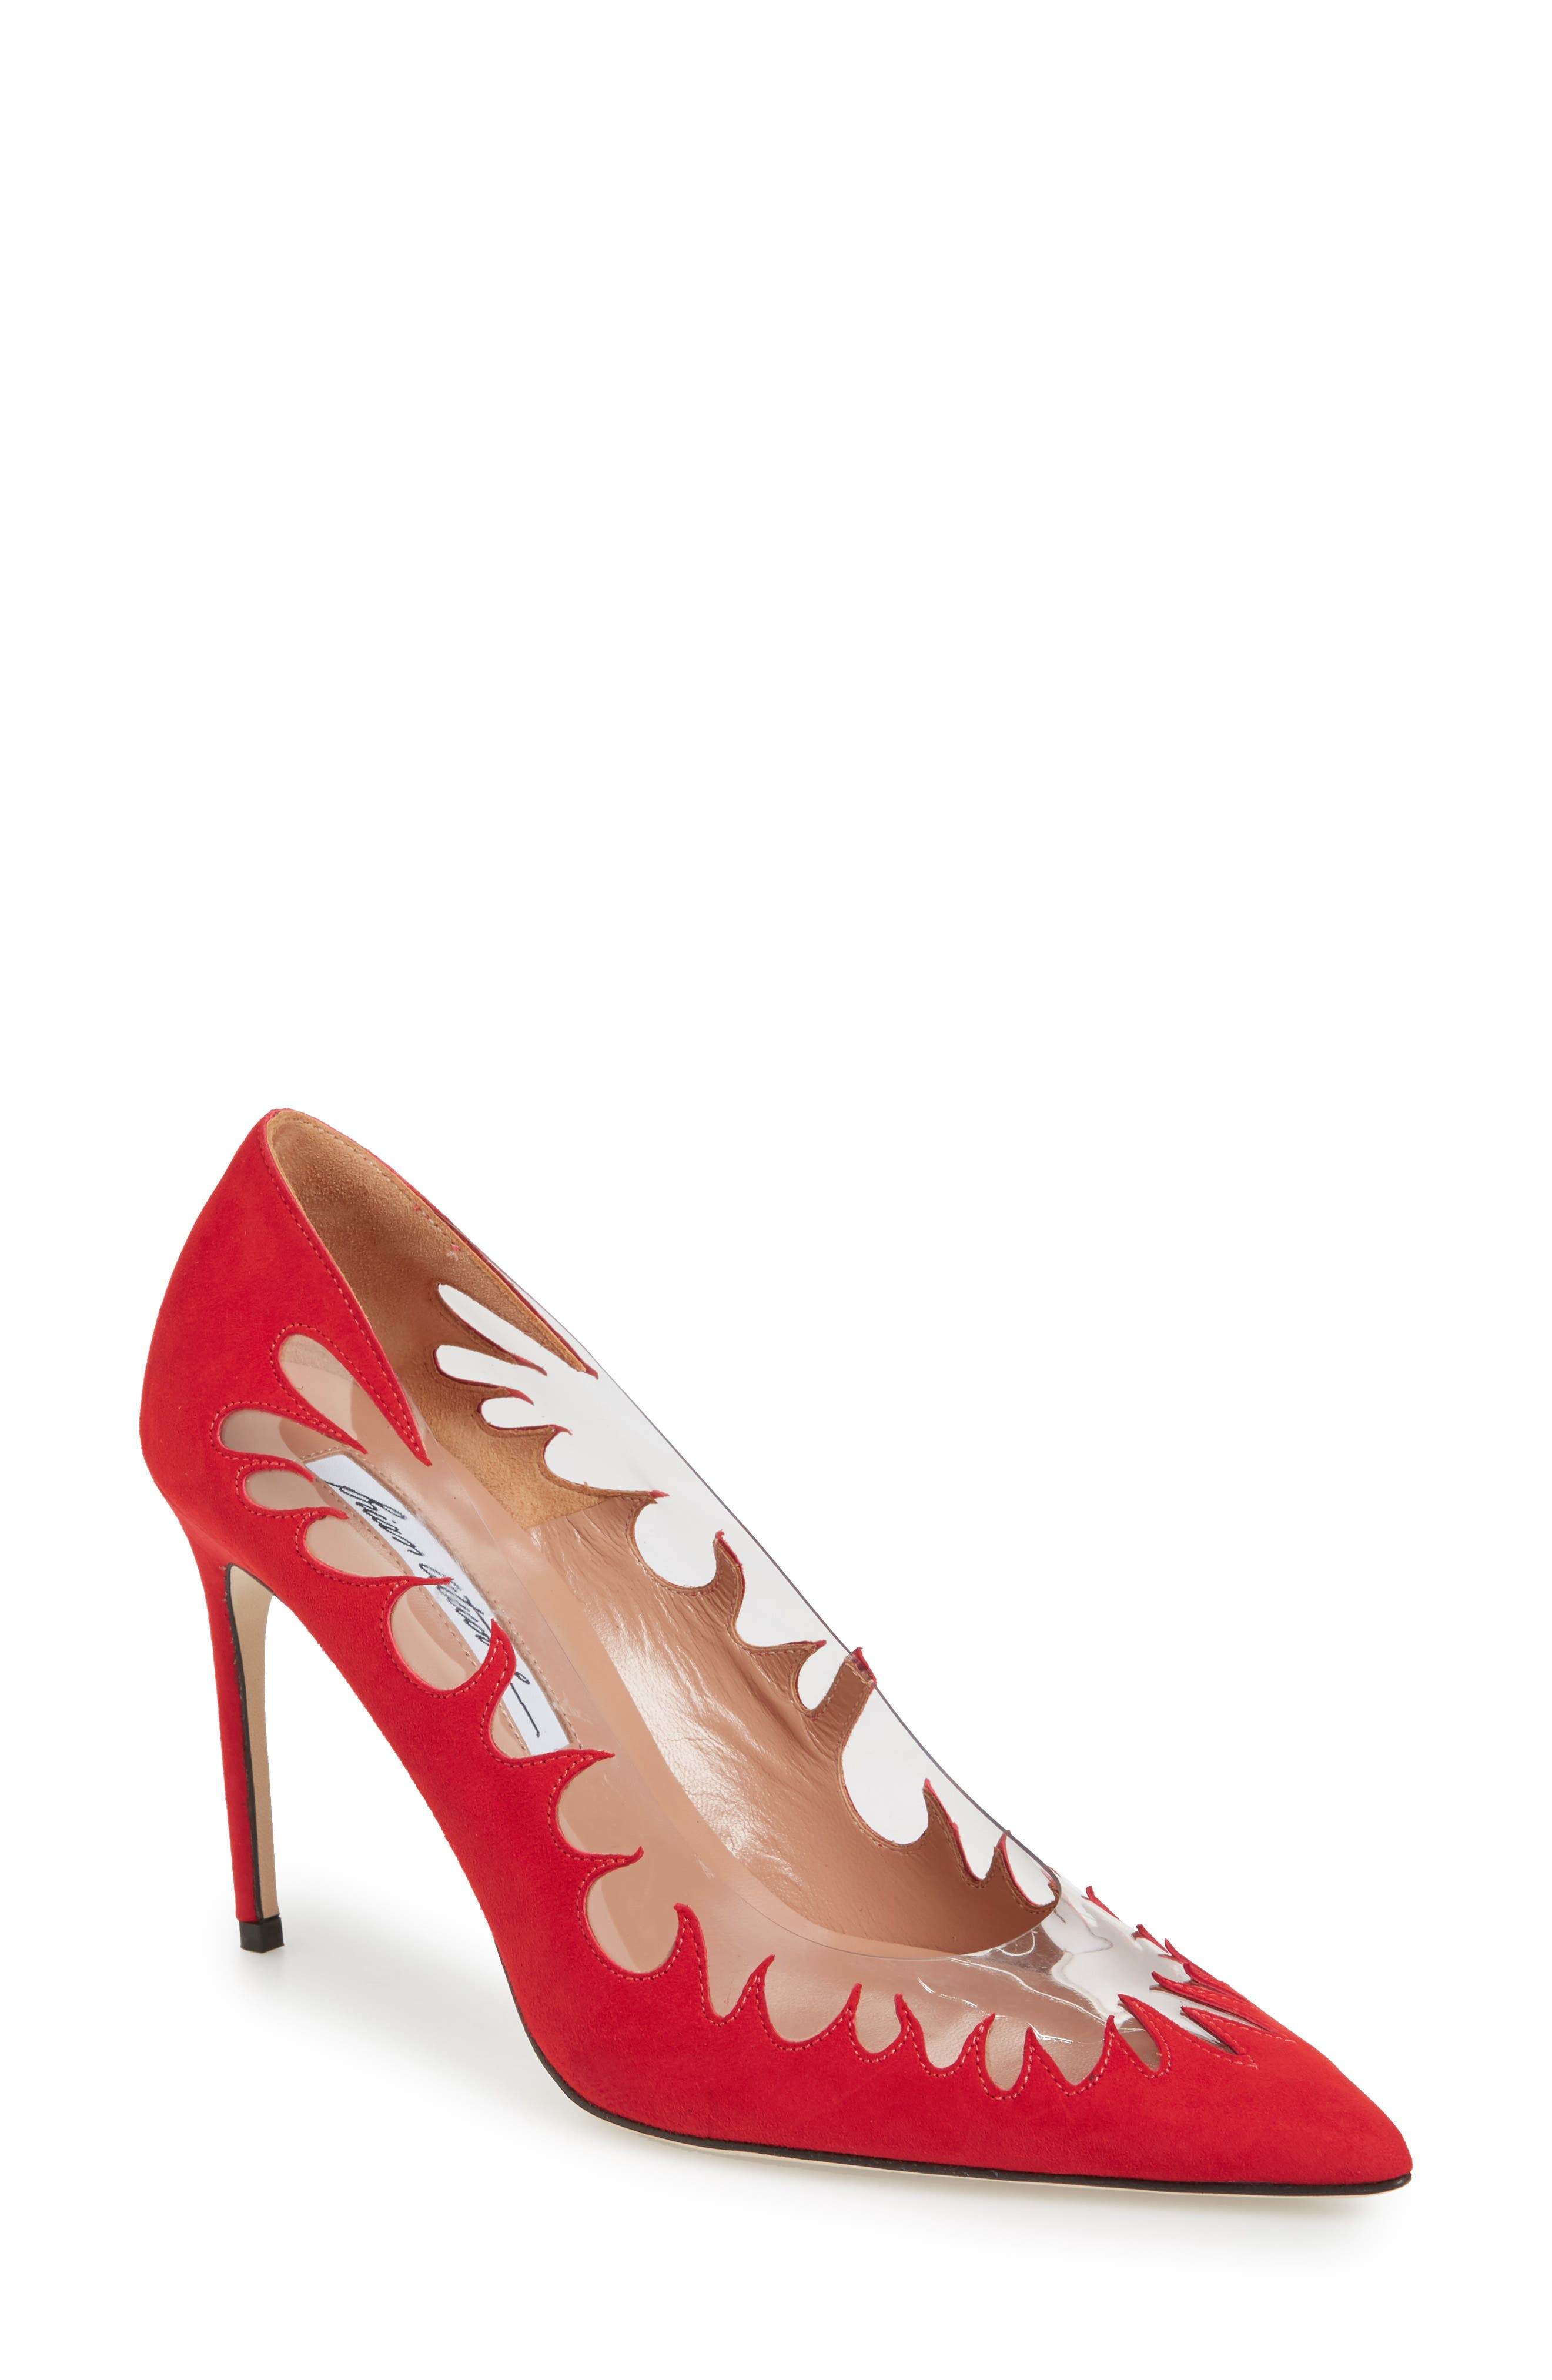 BRIAN ATWOOD Women'S Victory Suede Cutout Pointed Toe Pumps in Red Suede